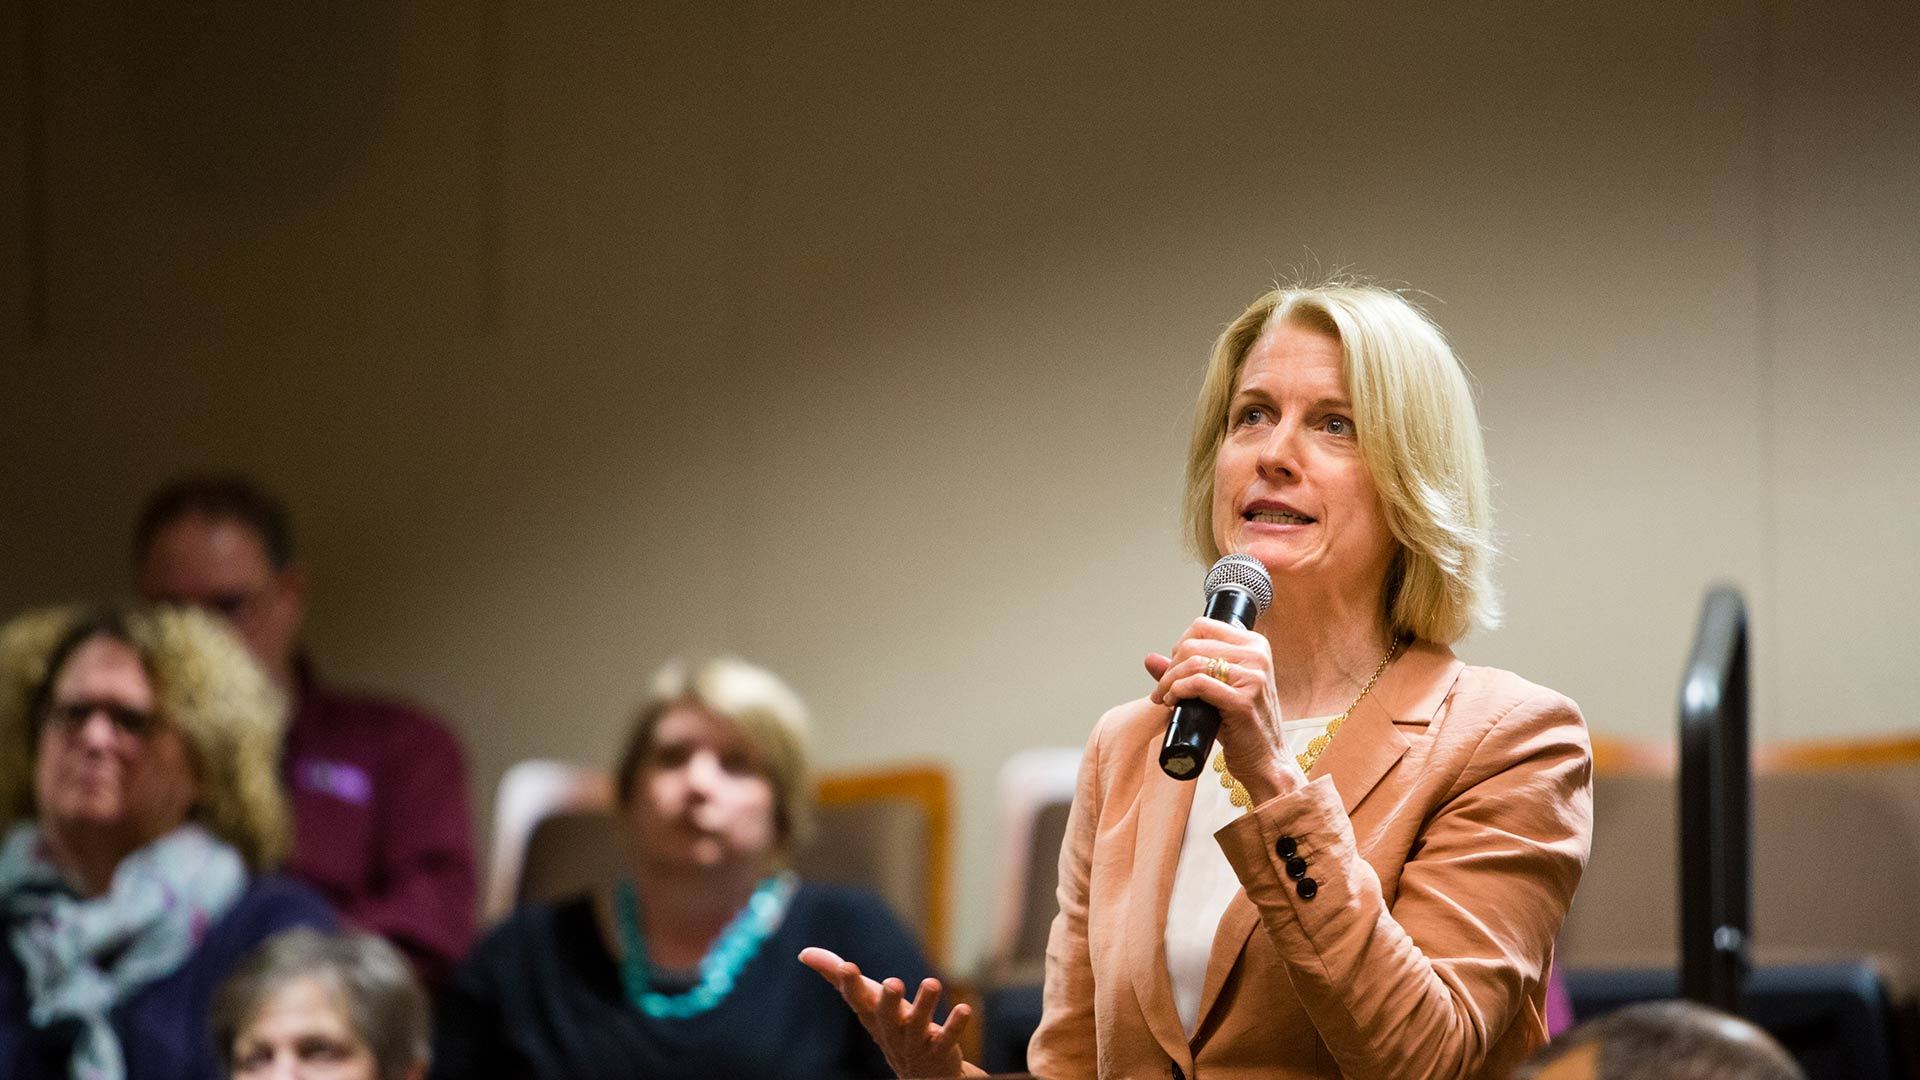 Laura Dunham, chair of the Entrepreneurship Department, speaks at an event.